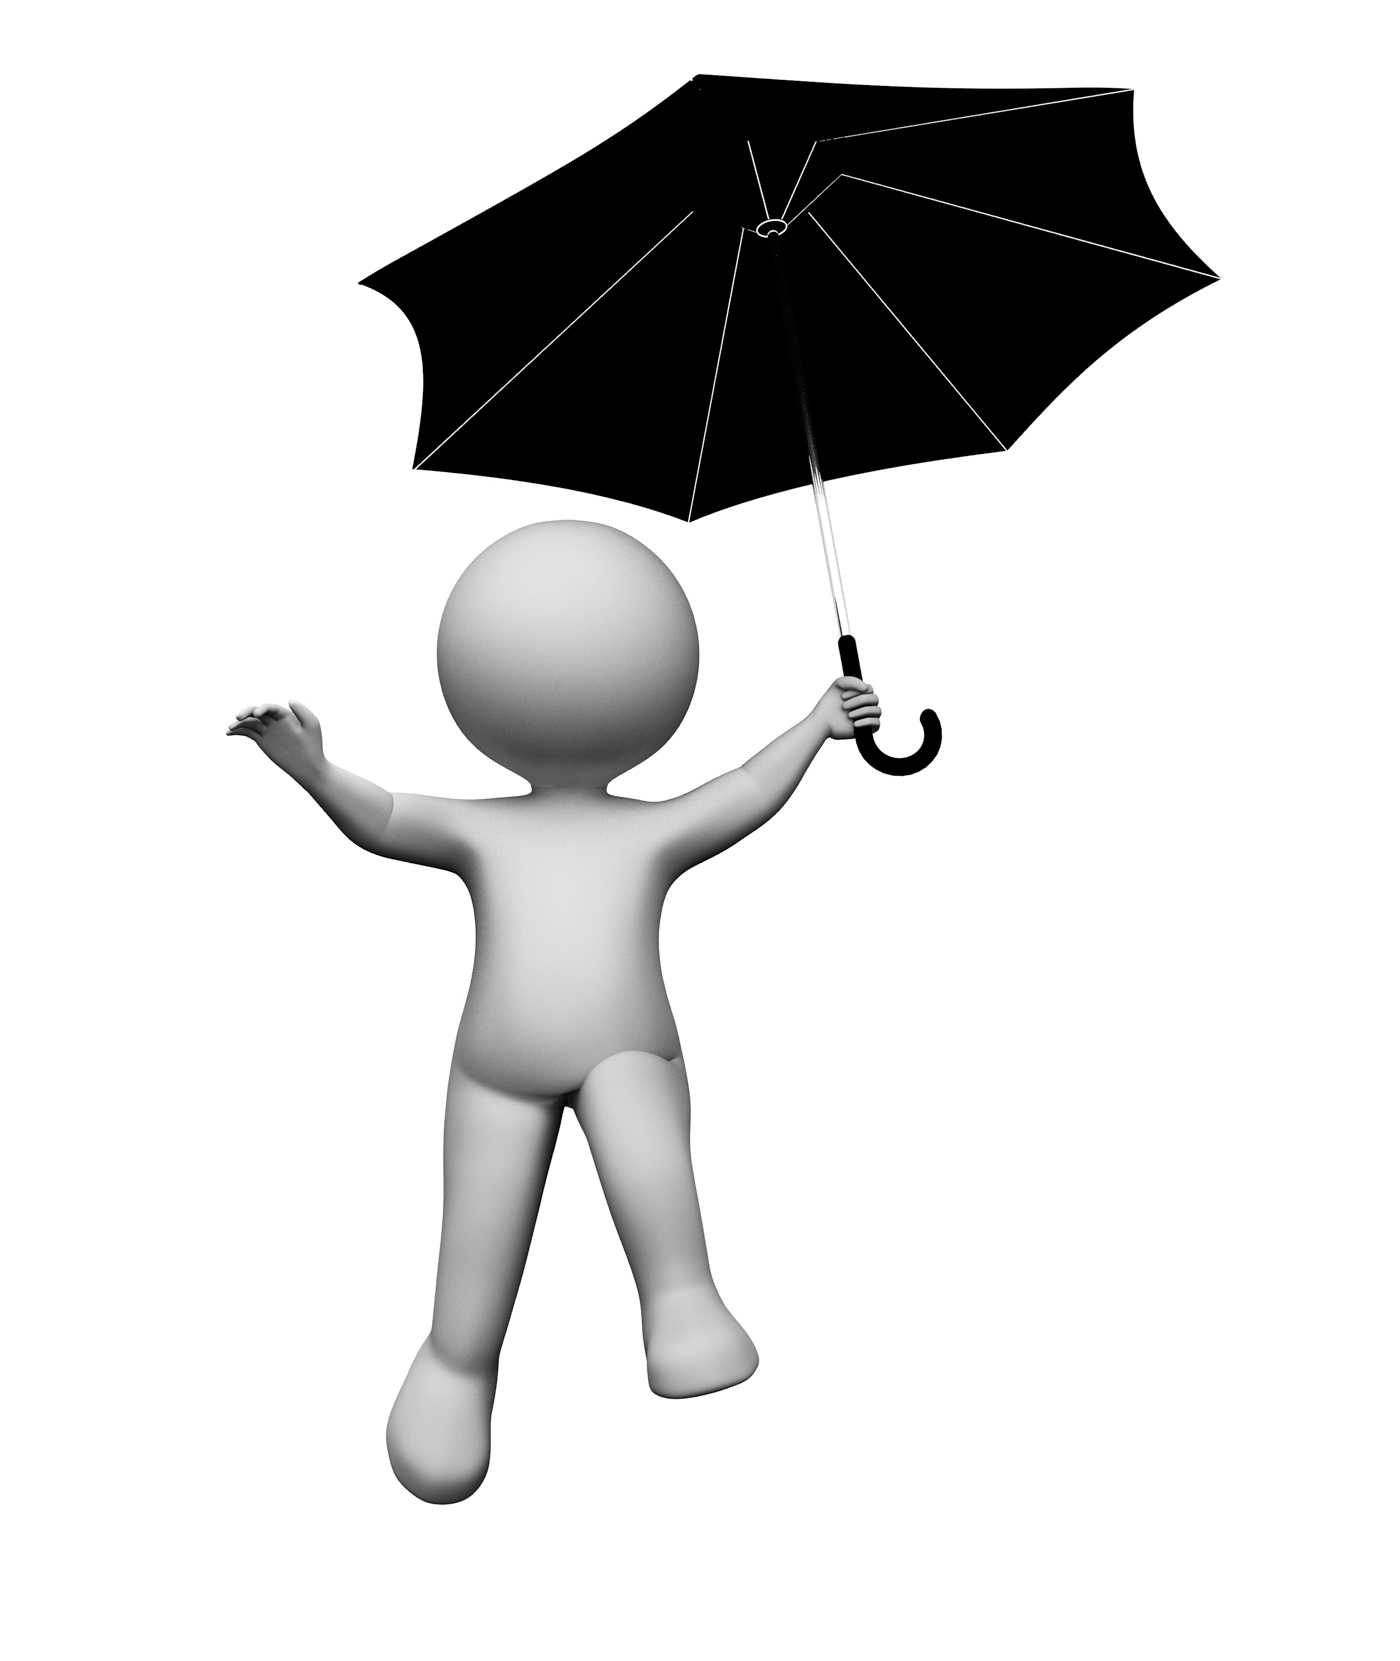 Umbrella Character Represents Render And Flying 3d Rendering, 3drendering, Character, Float, Floating, HQ Photo